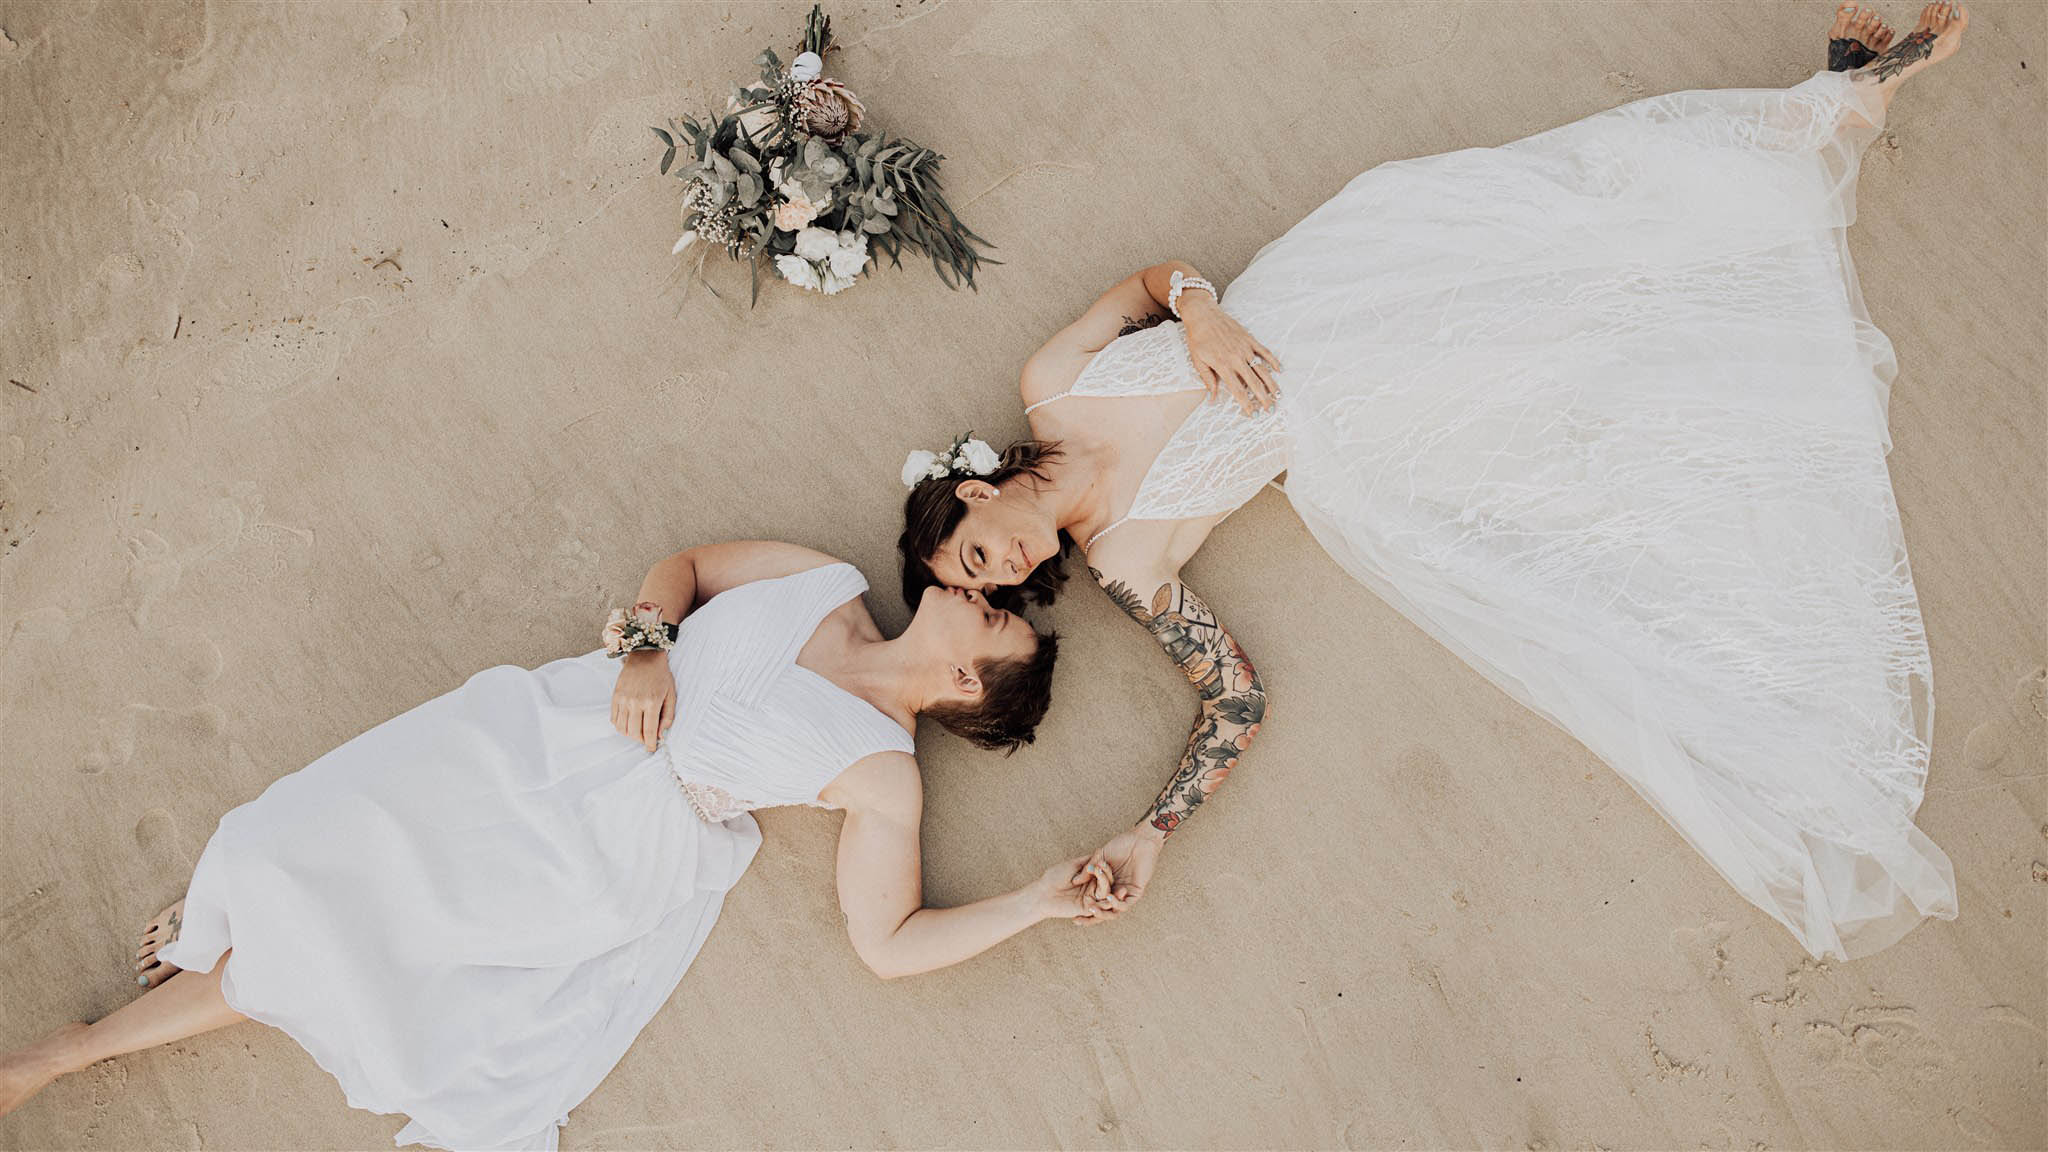 Lesbian Byron Bay Elopement - Bird and Boy Photography